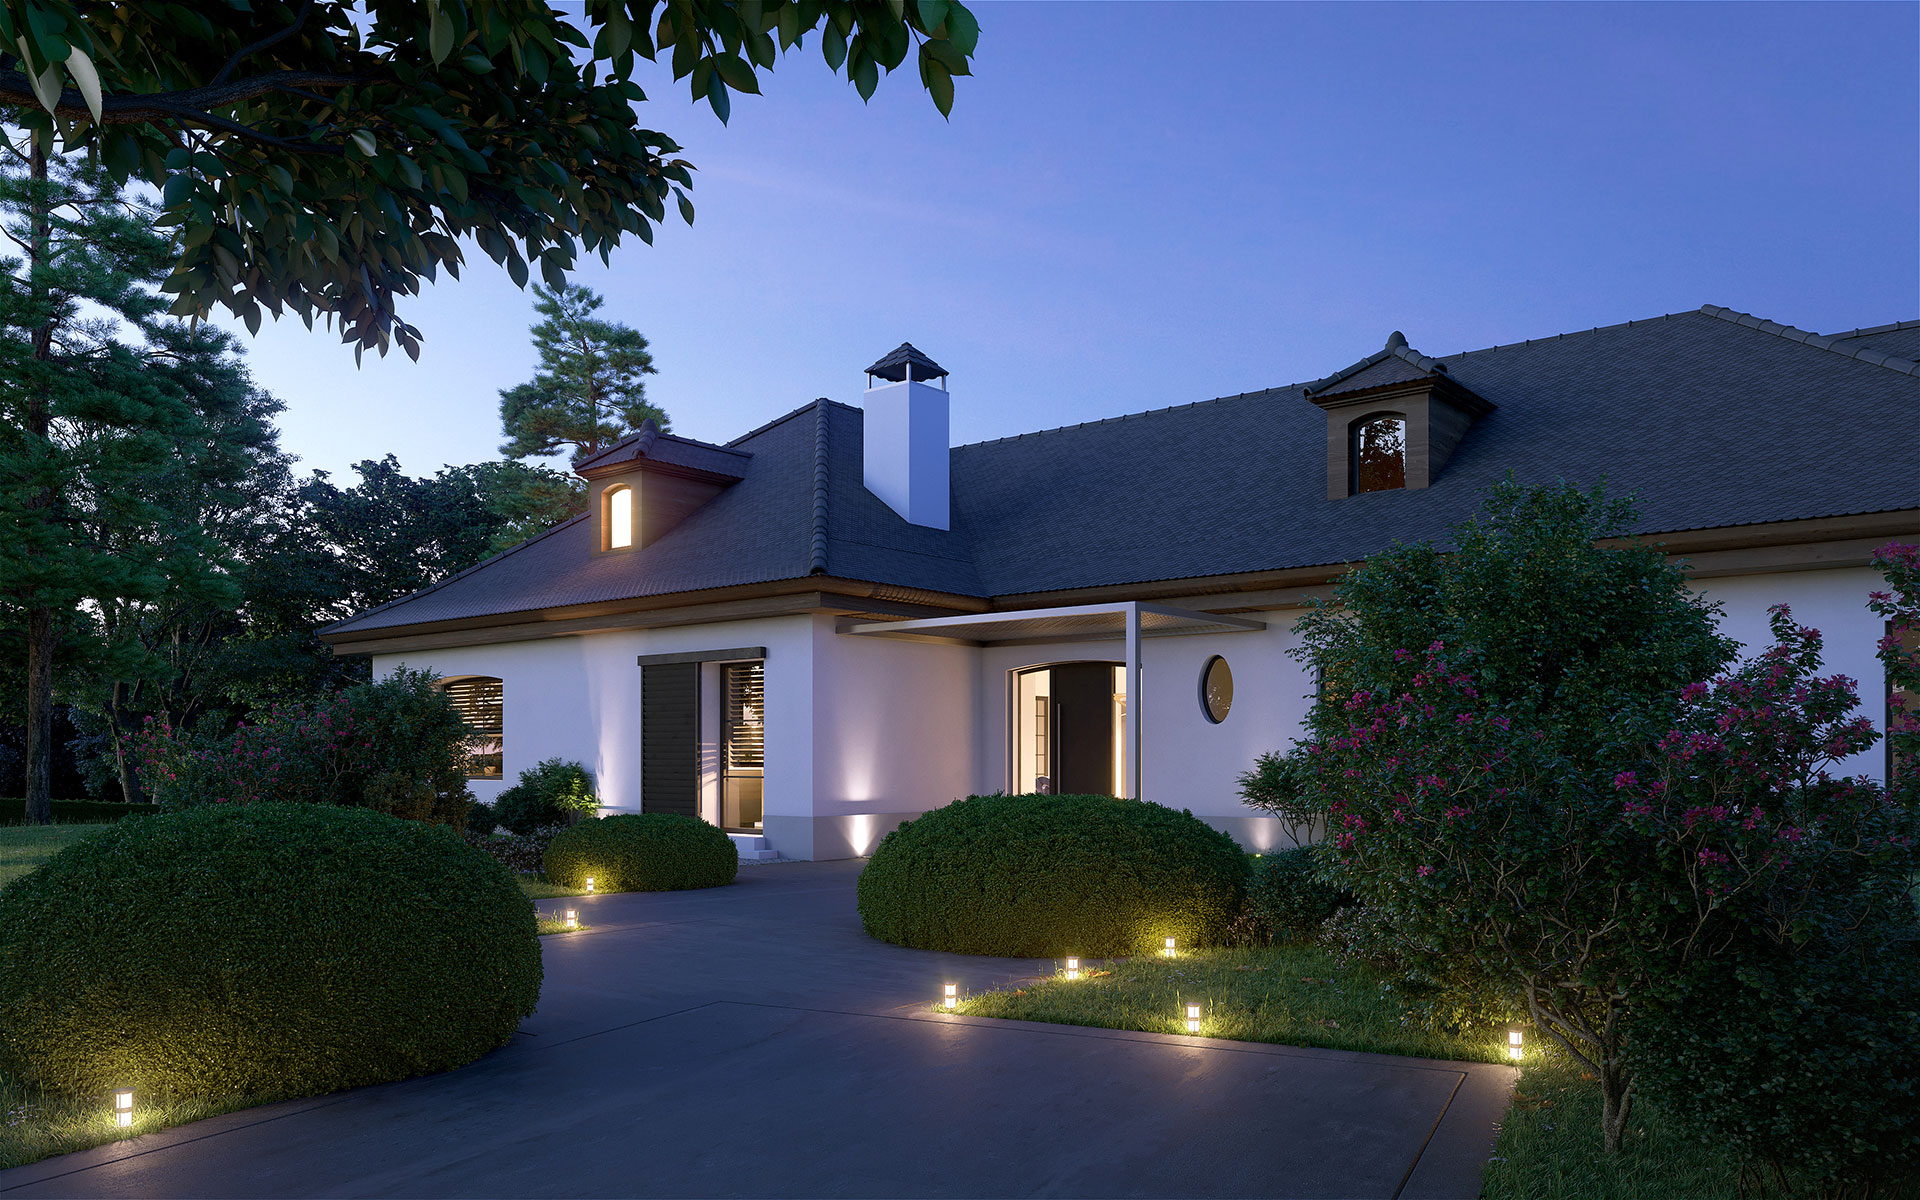 3D visualization of a luxurious home entrance at sunset